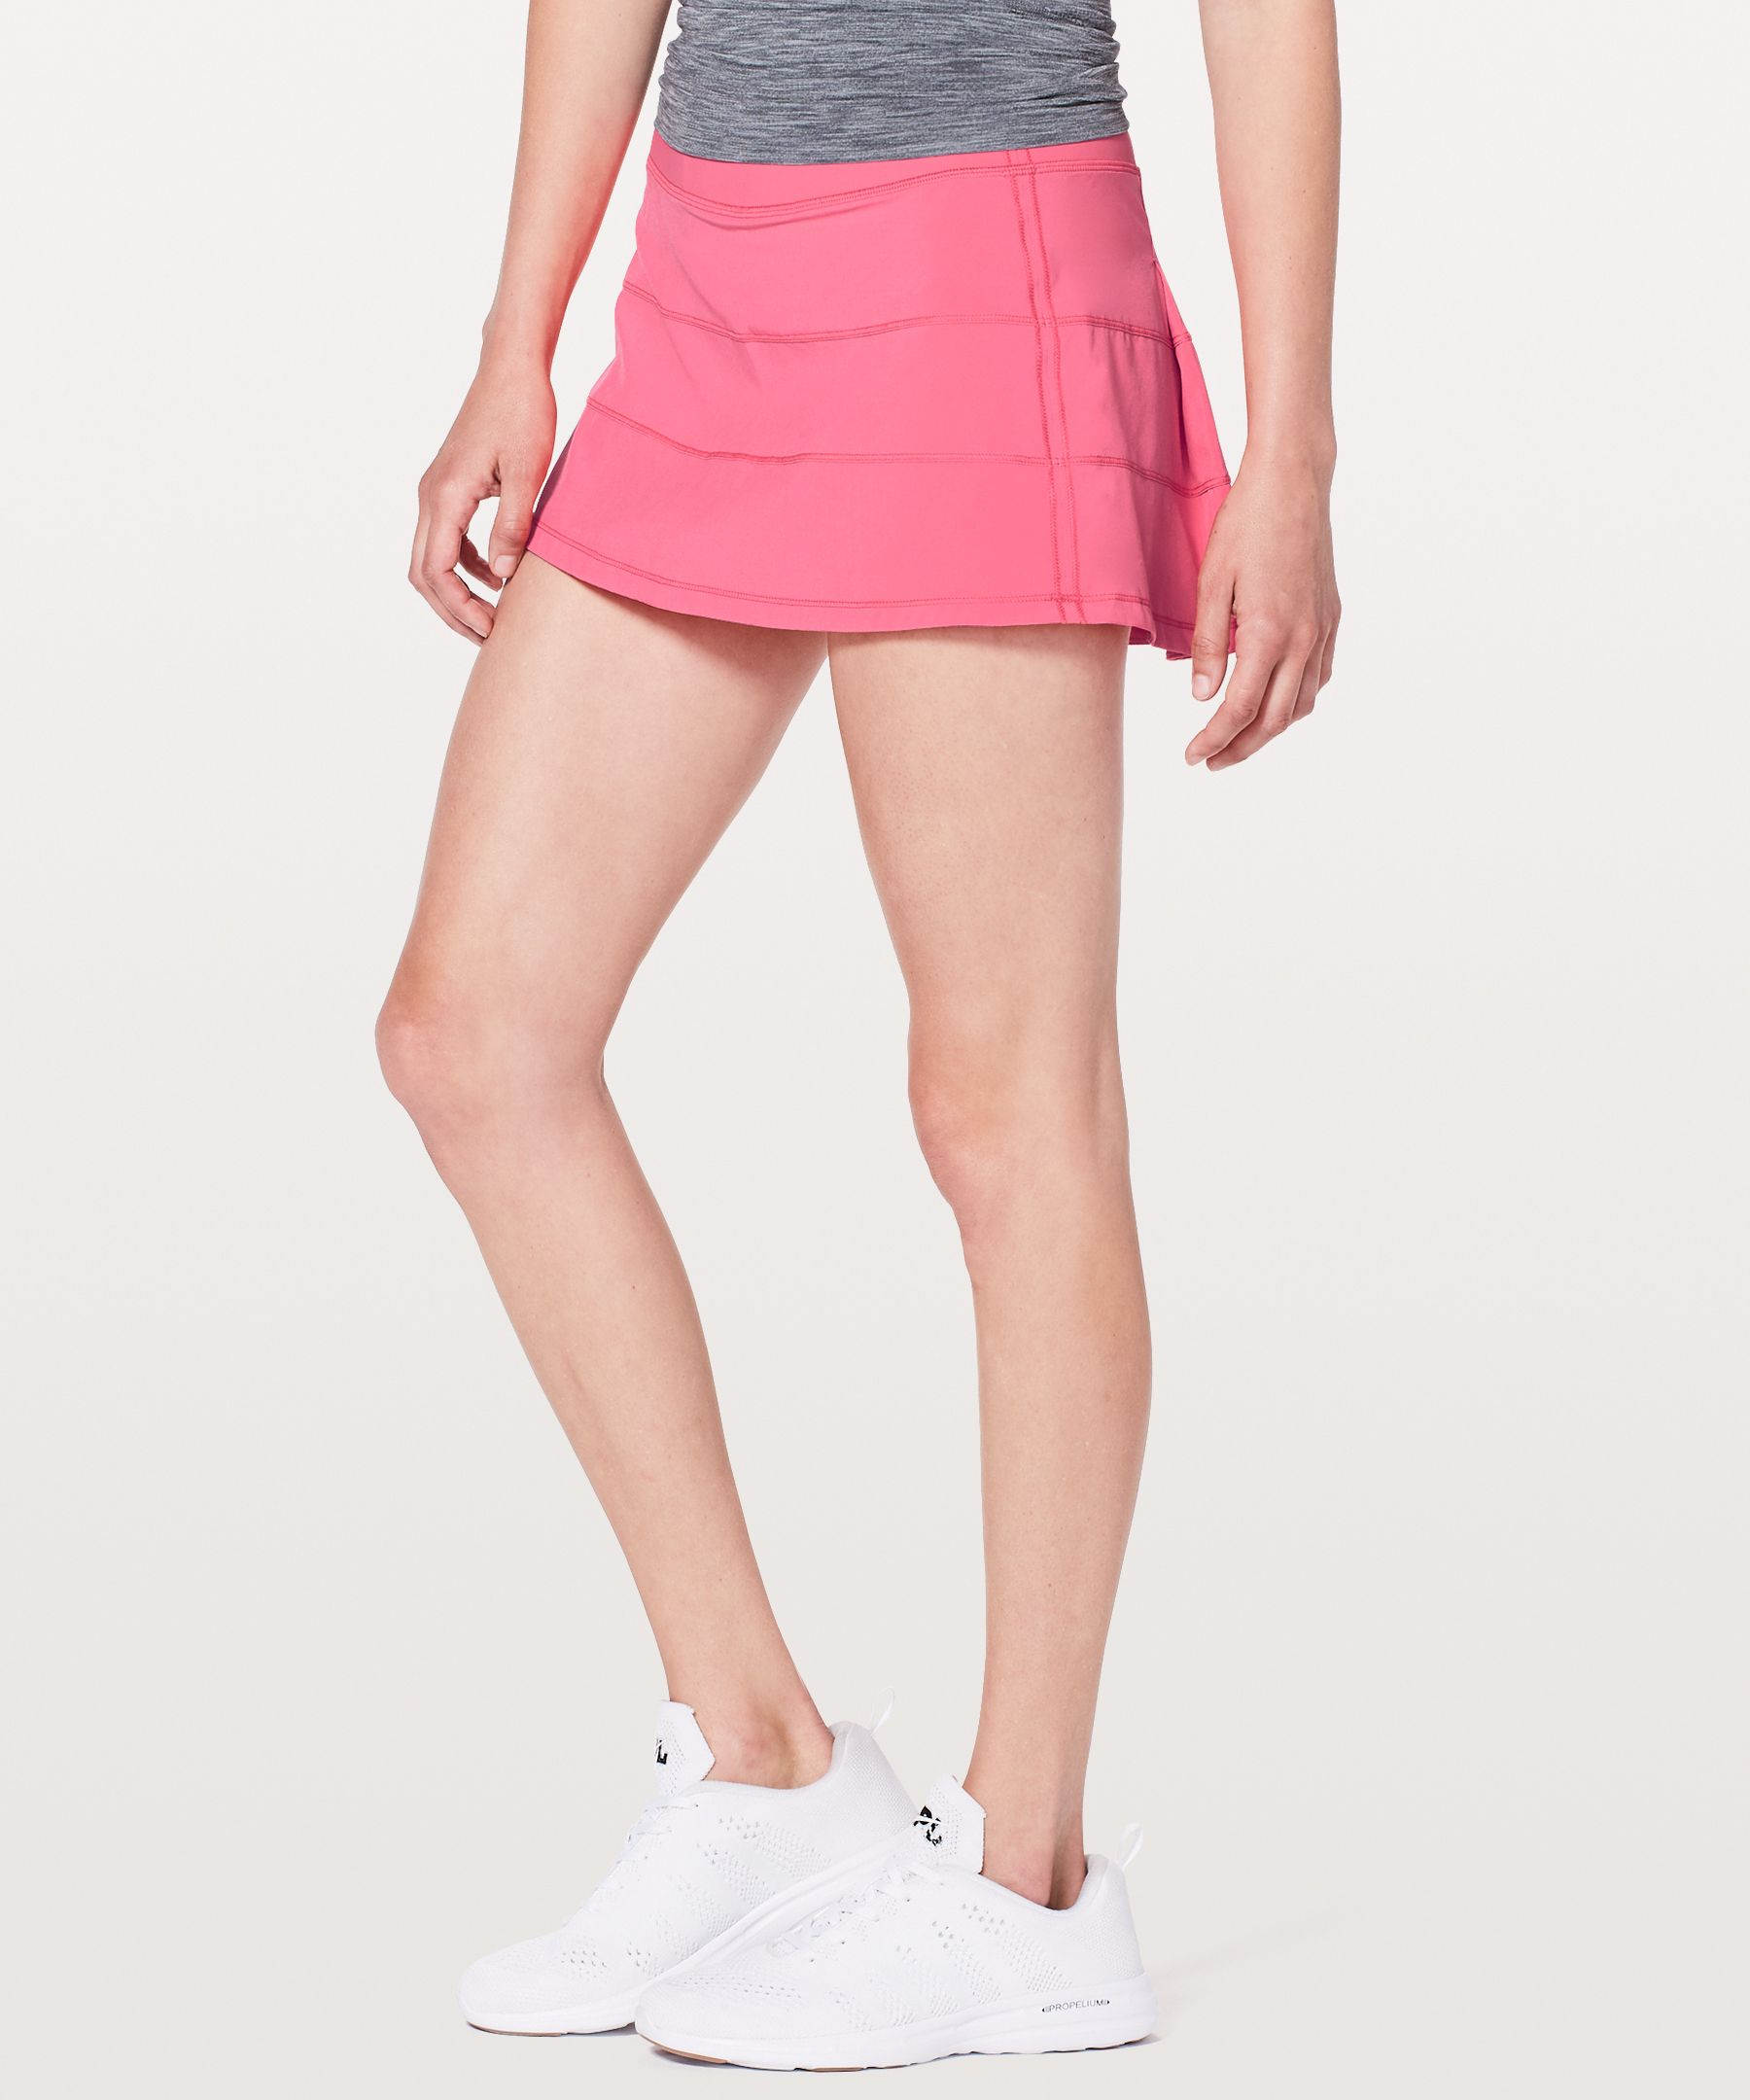 Pace Rival Skirt Ii (Regular) 4 Way Stretch by Lululemon